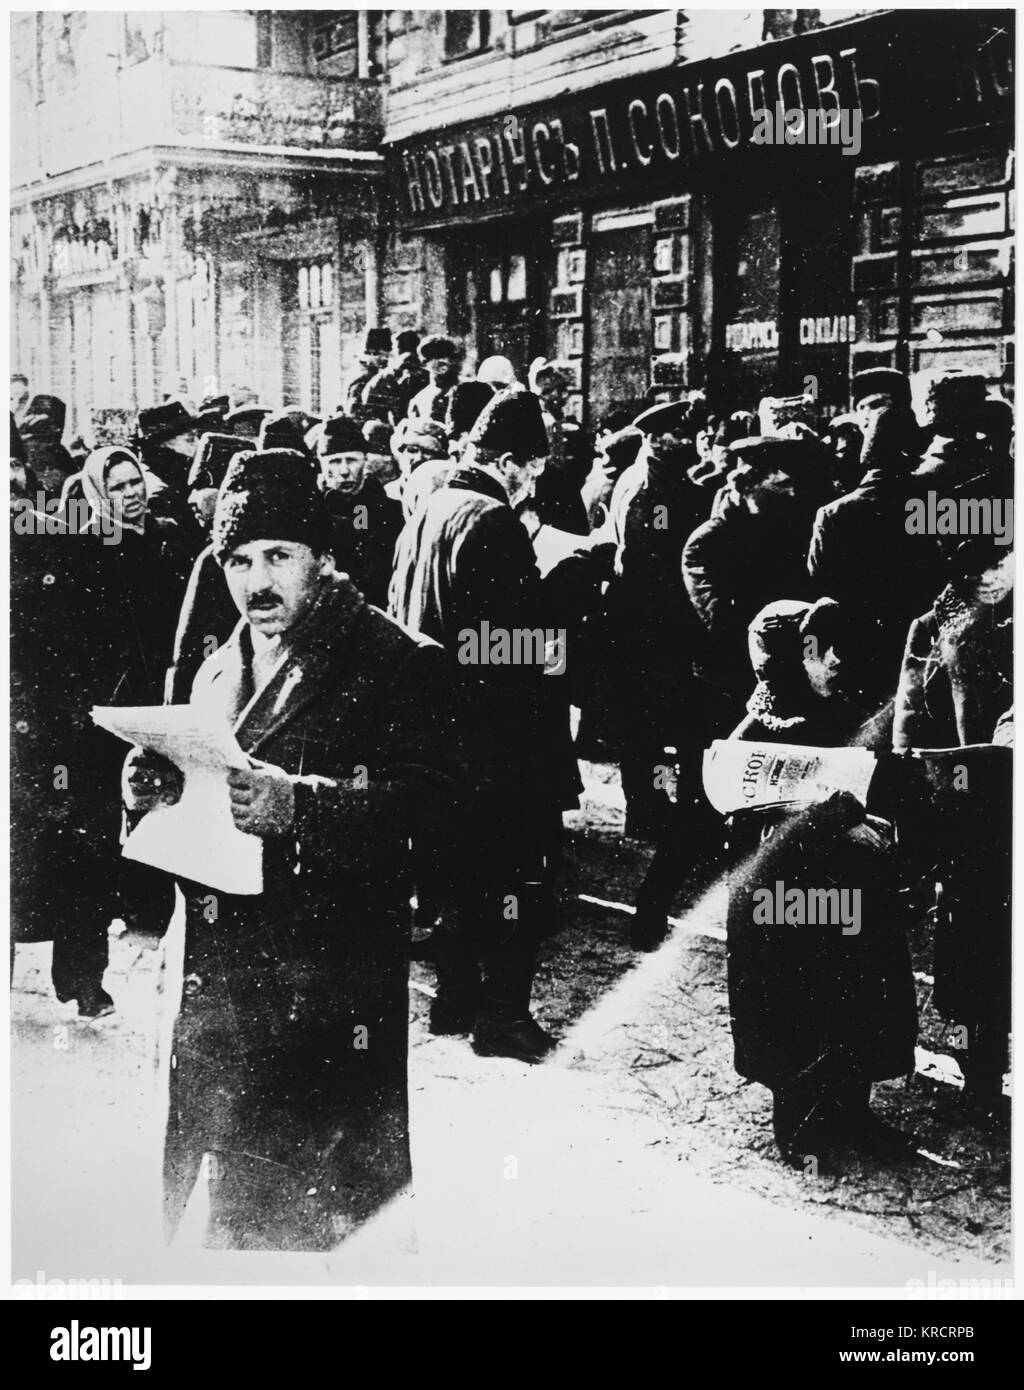 RUSSIAN REVOLUTION - Moscow - reading the first news of the Revolution. Date: FEBRUARY 1917 - Stock Image